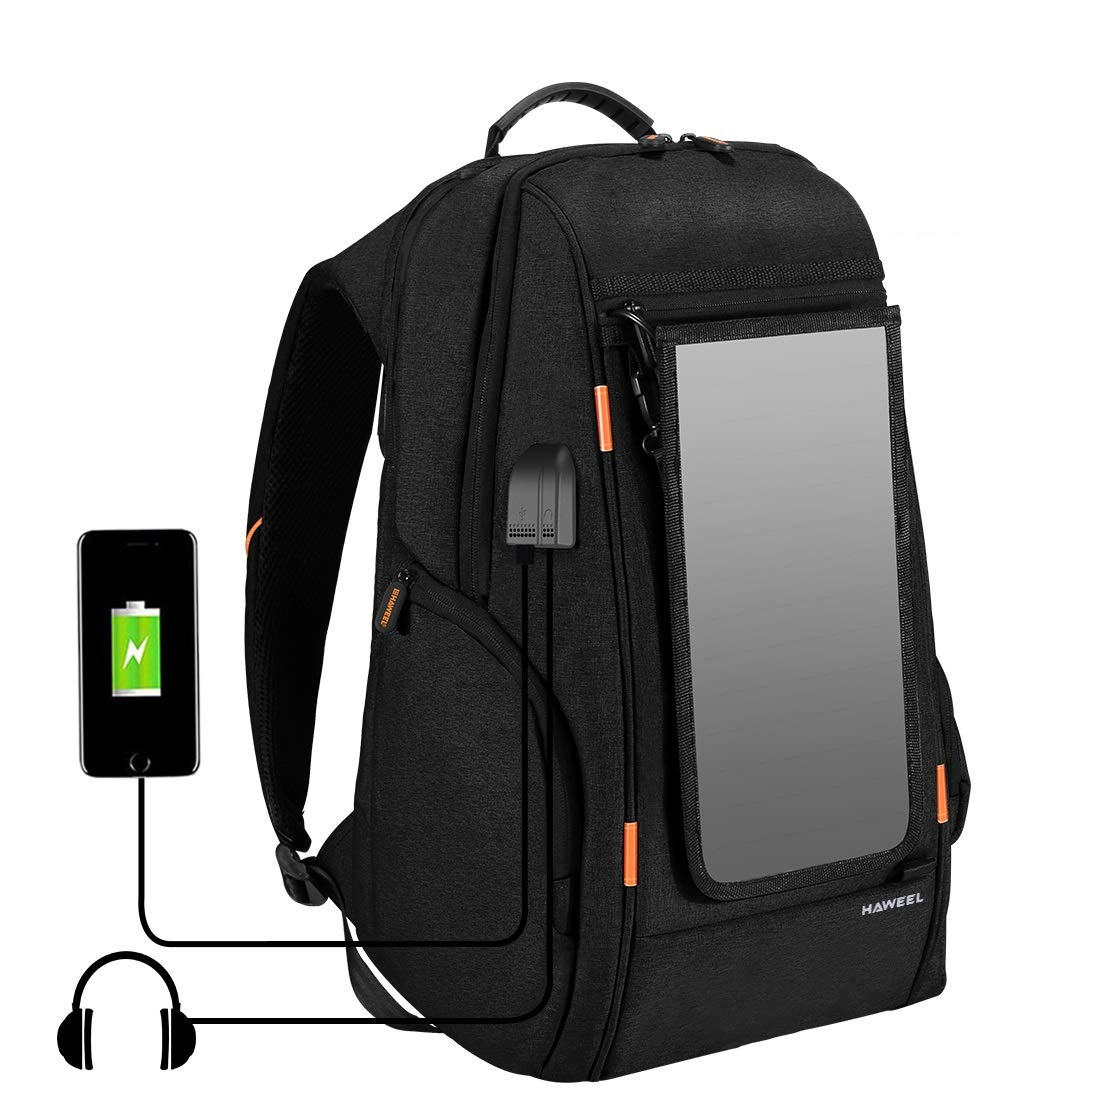 HAWEEL External Frame Backpack with 7 Watts Solar Panel Charge for iPhone iPad iPods Android Smart Phones Perfect for Hiking Camping Trekking Fishing Emergency and Outdoor Sports by HAWEEL